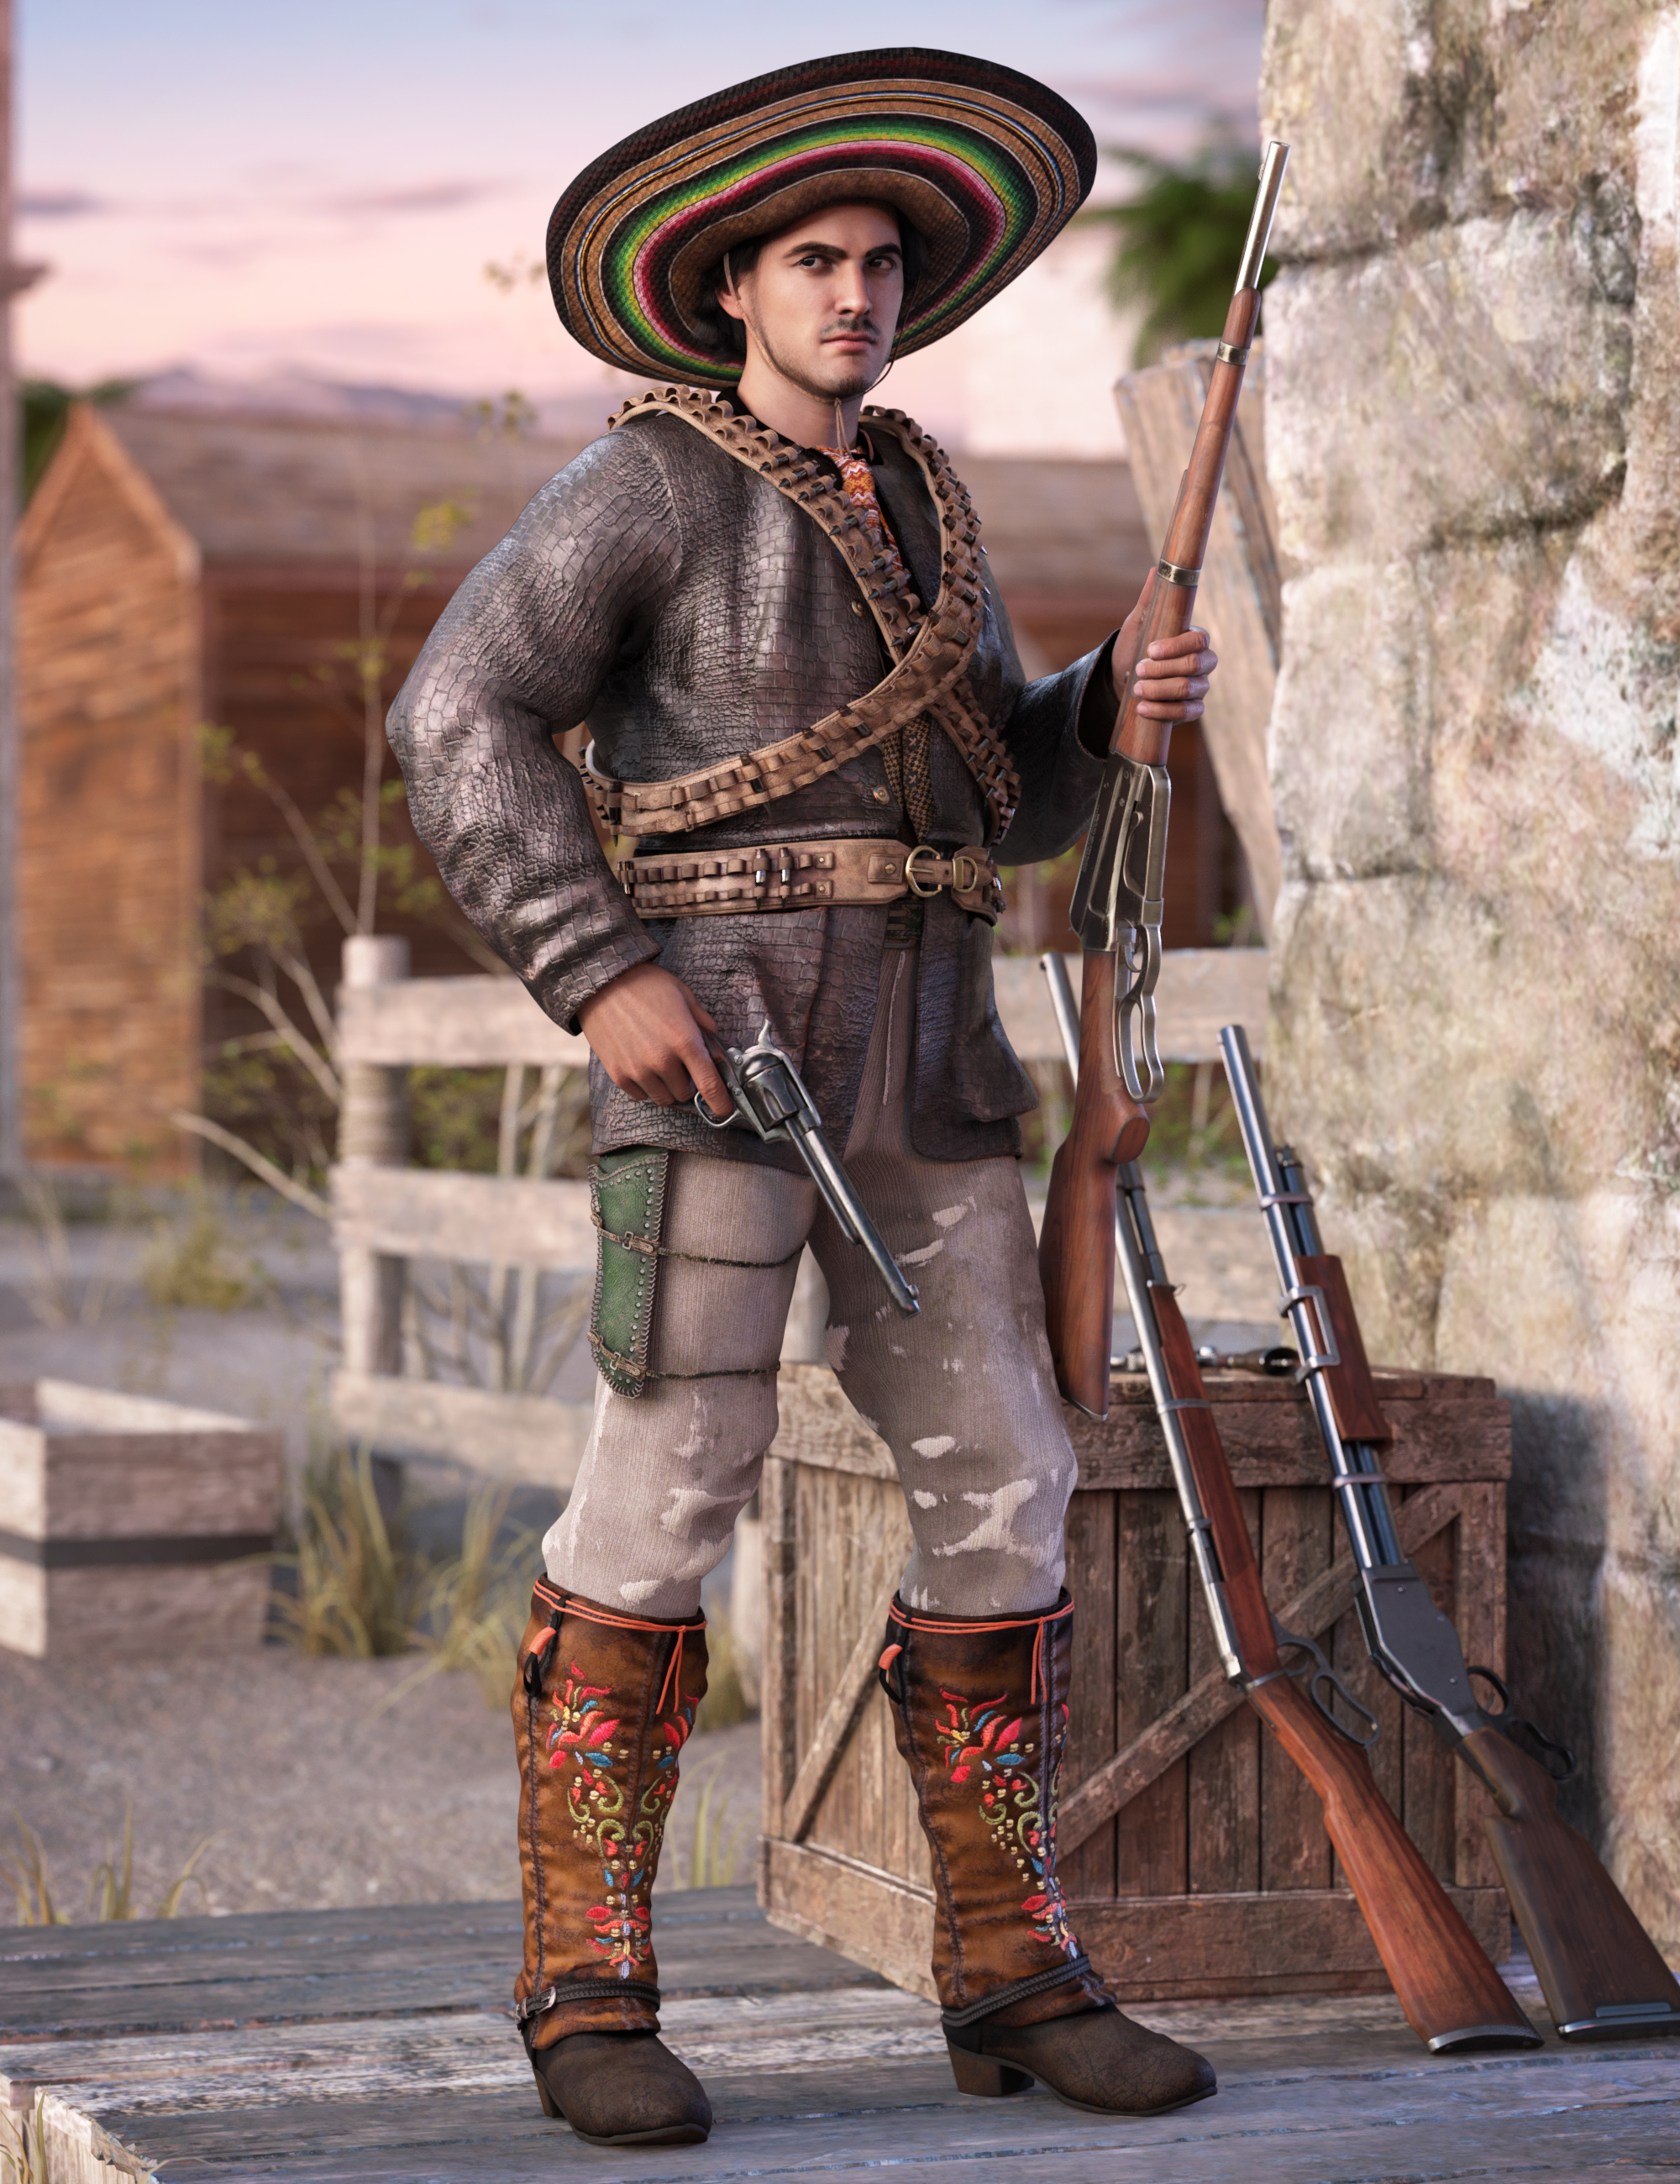 Guerrillero Outfit for Genesis 8 and 8.1 Males by: Barbara BrundonUmblefuglyShox-Design, 3D Models by Daz 3D